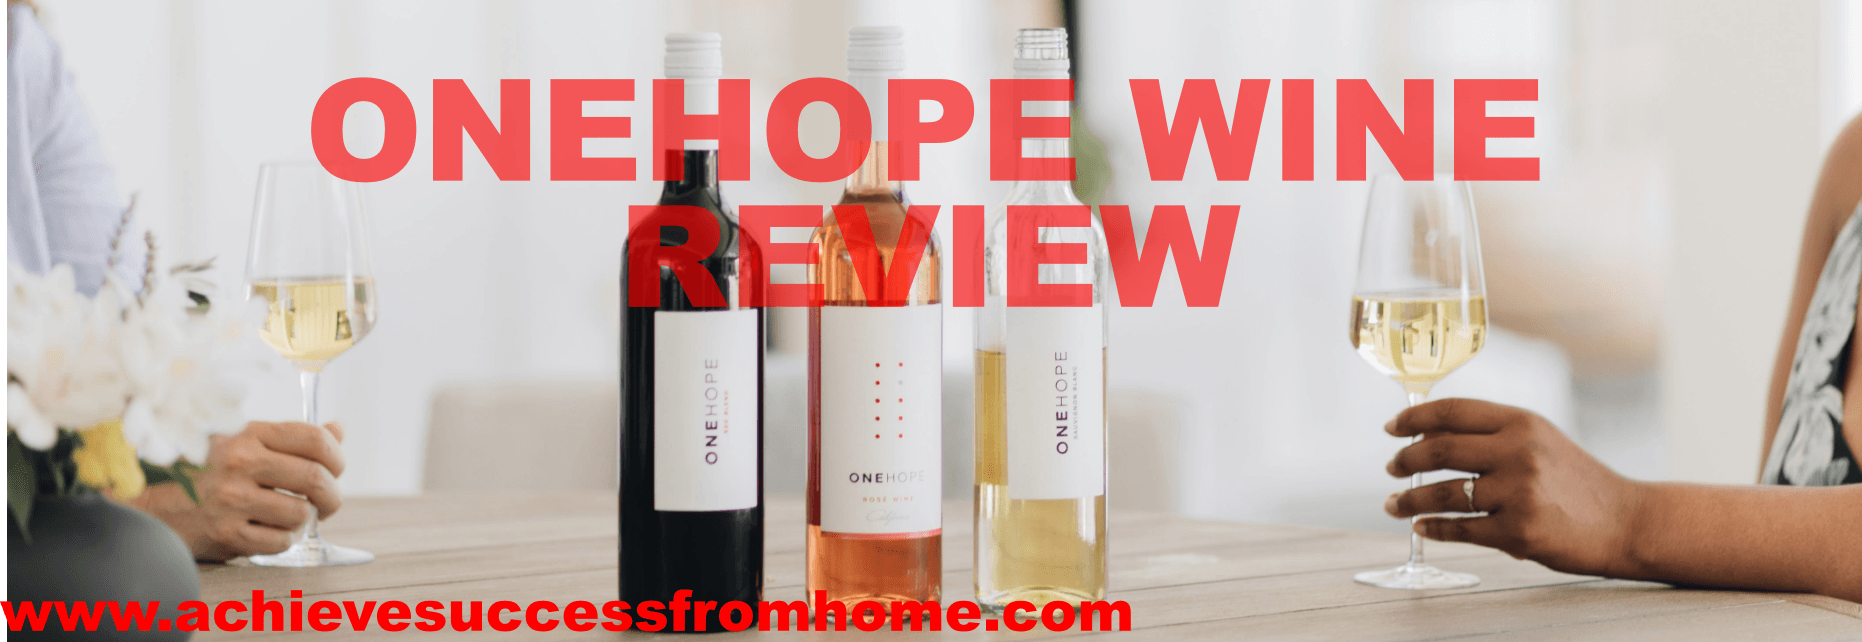 Onehope Wine Reviews - Great WINES or Great SCAM?